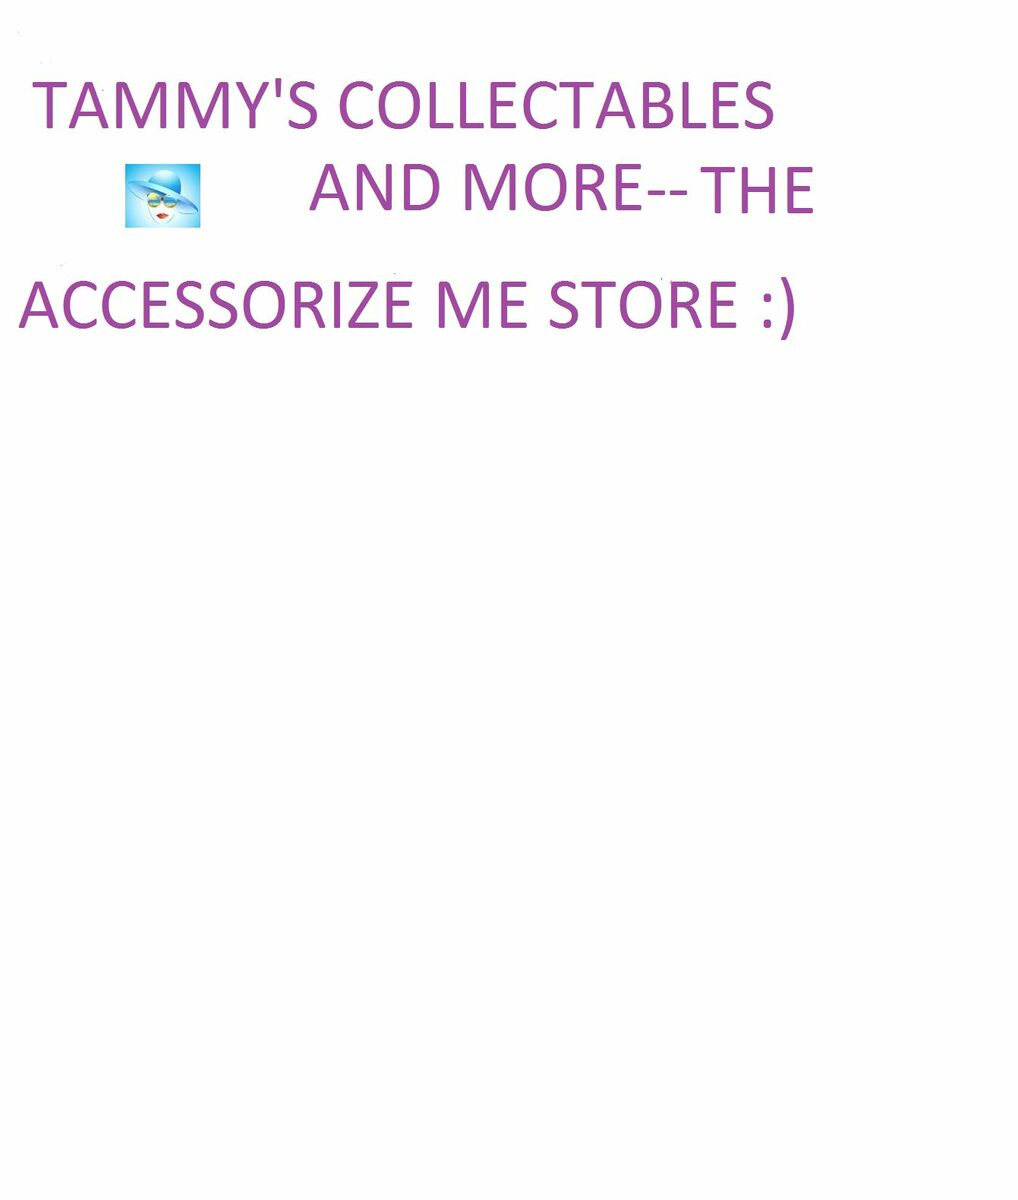 TAMMYS COLLECTABLES AND MORE